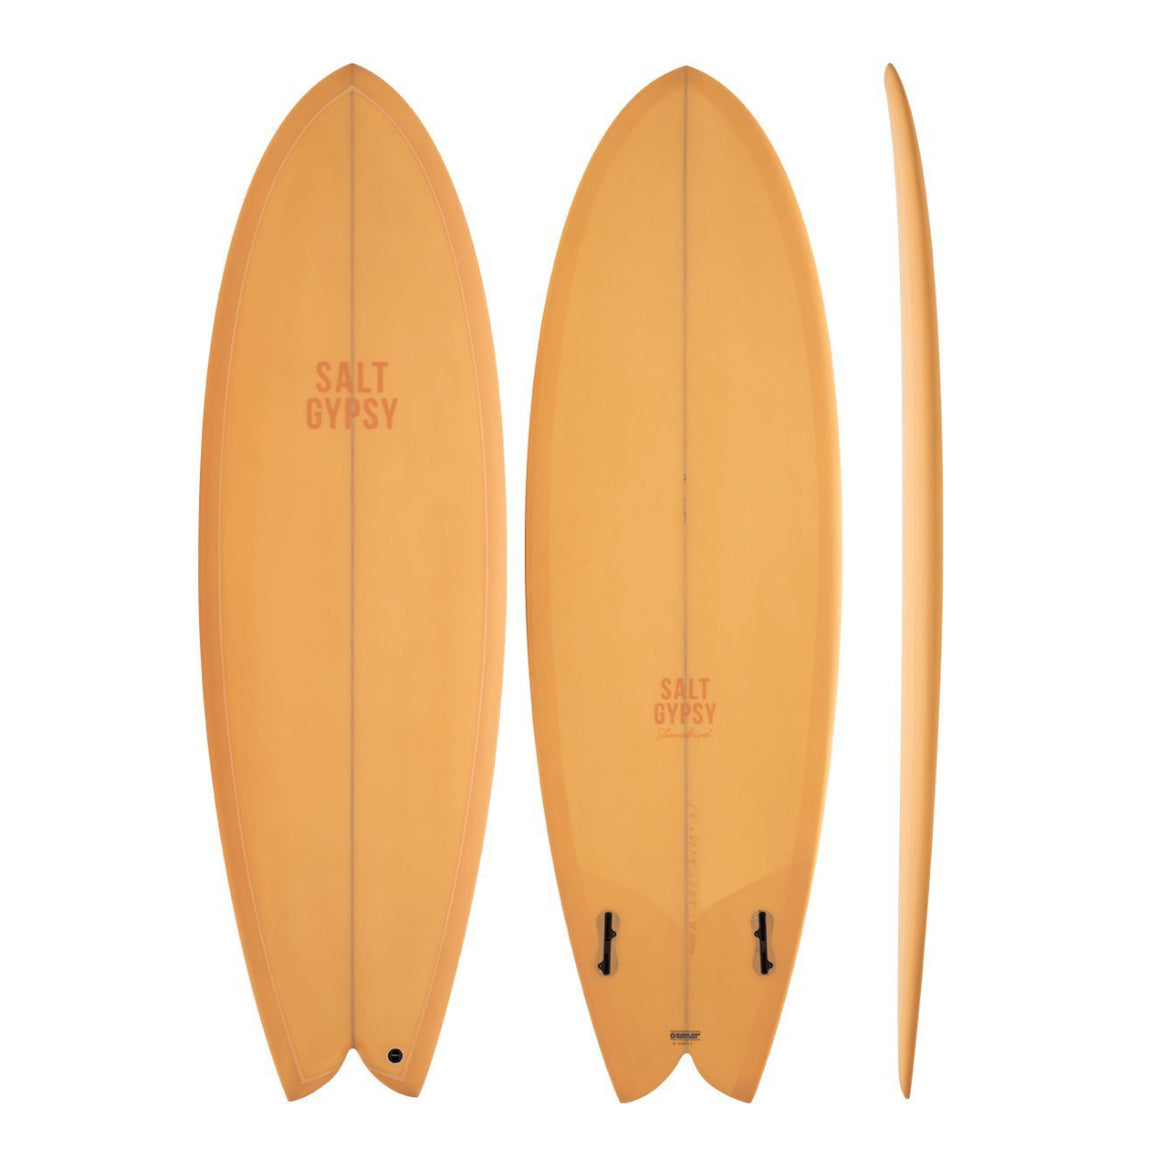 Salt Gypsy Shorebird 5'11 Pale Apricot Tint - PU **COMING SOON**